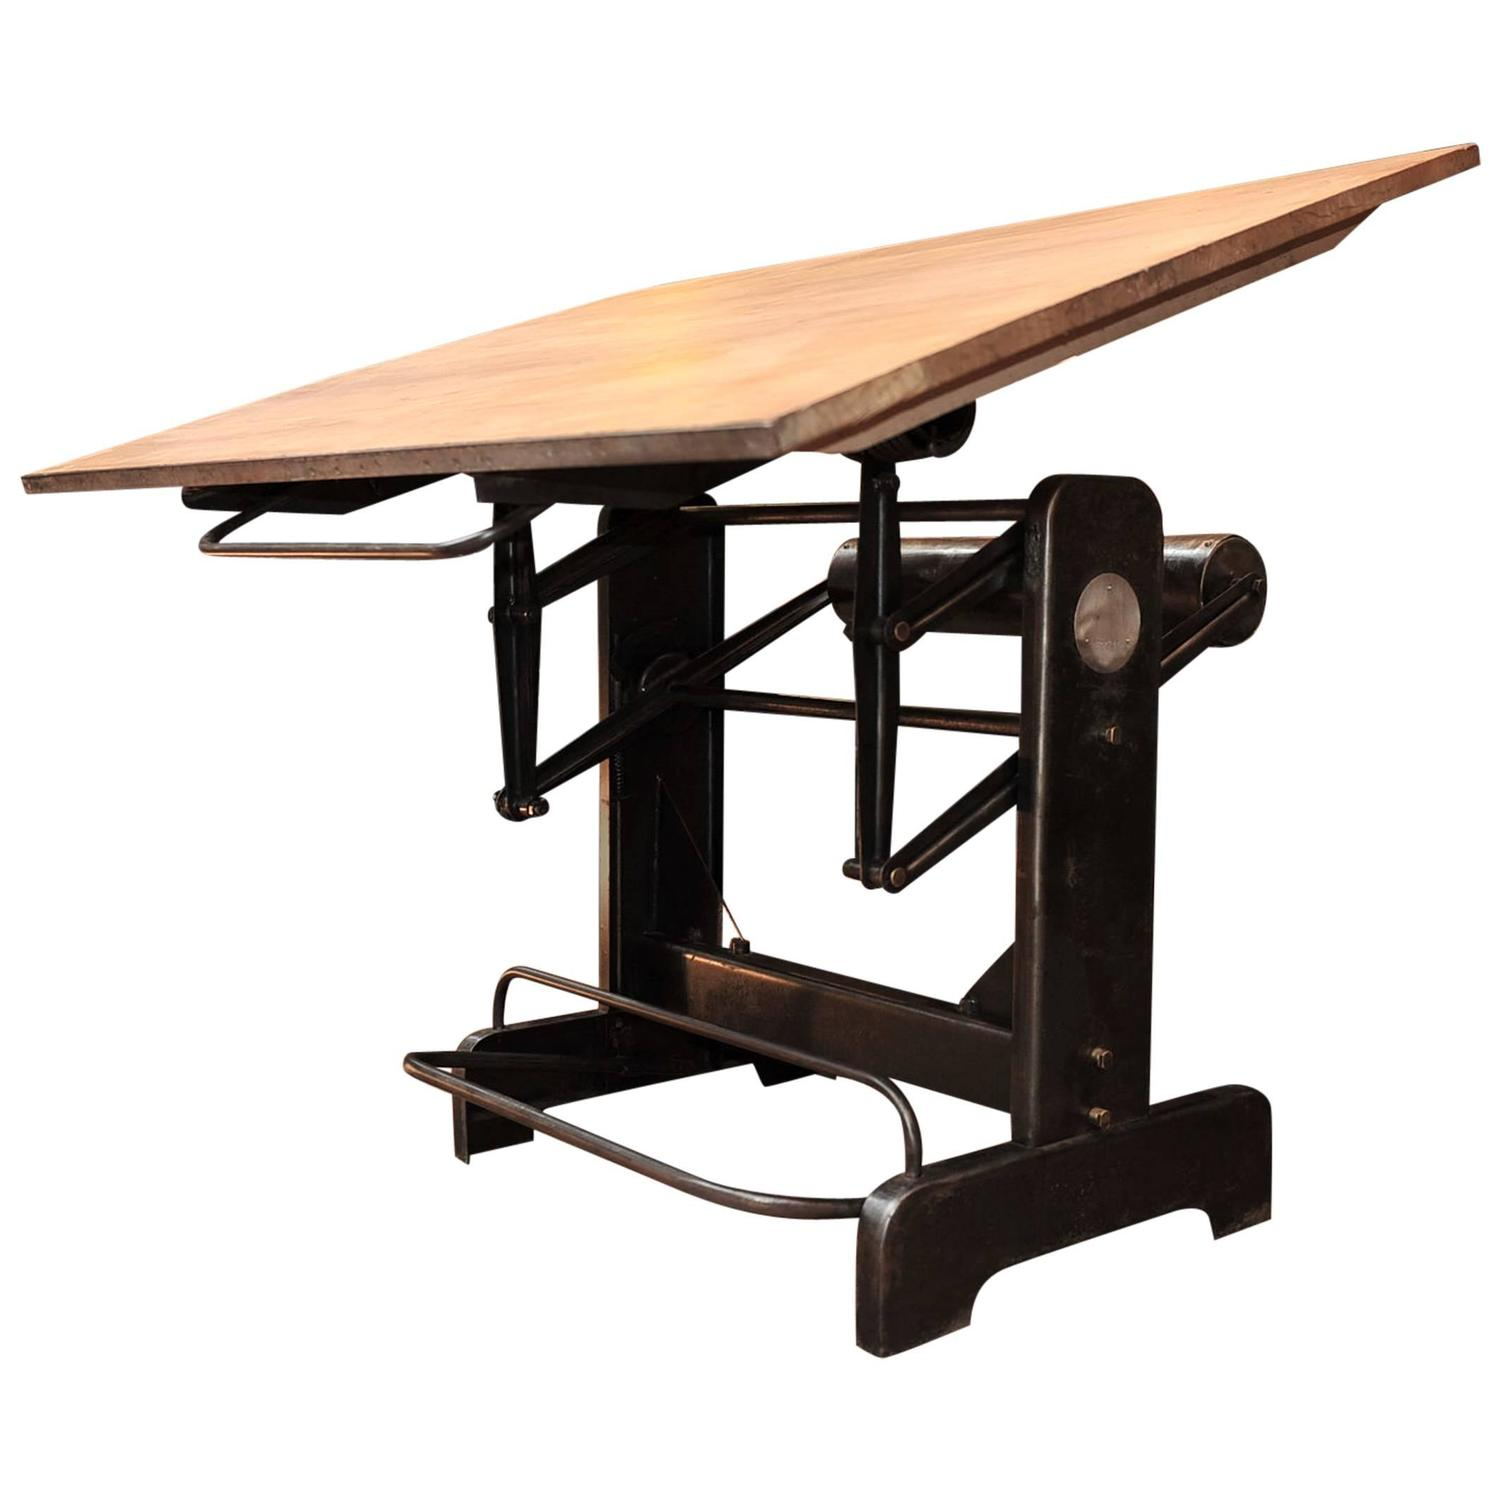 Drafting table dimensions - Industrial Adjustable French Architect S Drafting Table 1950s At 1stdibs